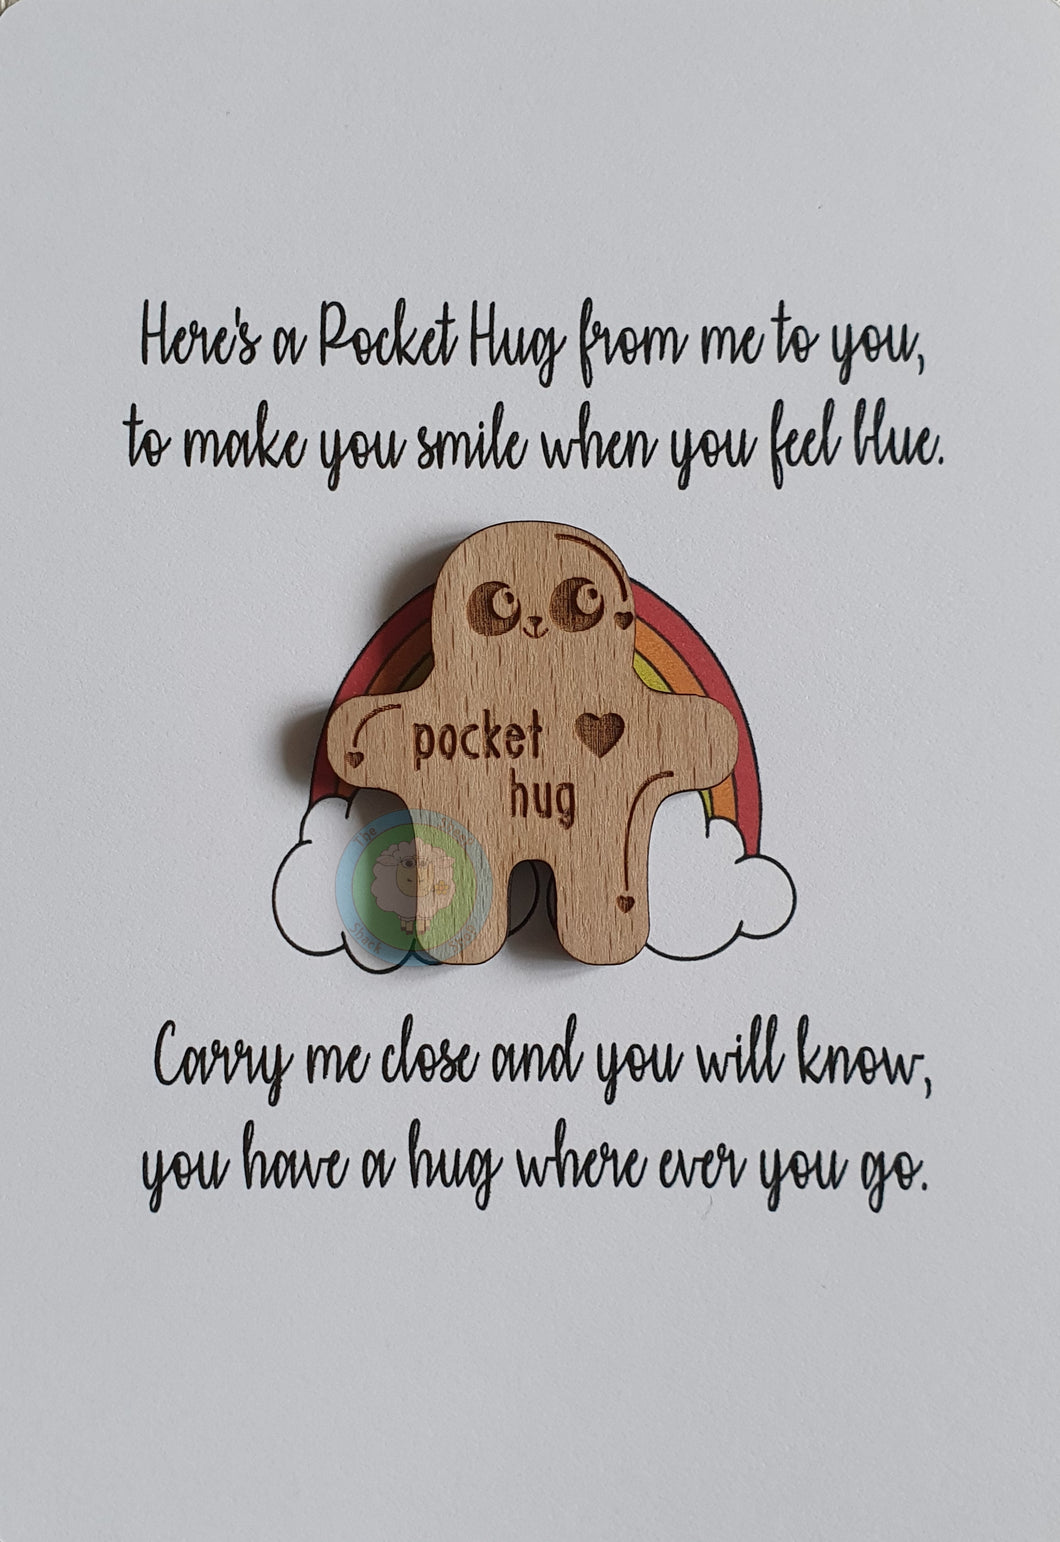 Wood Veneer Pocket Hug(s) 4cm (Free Shipping - UK Only)